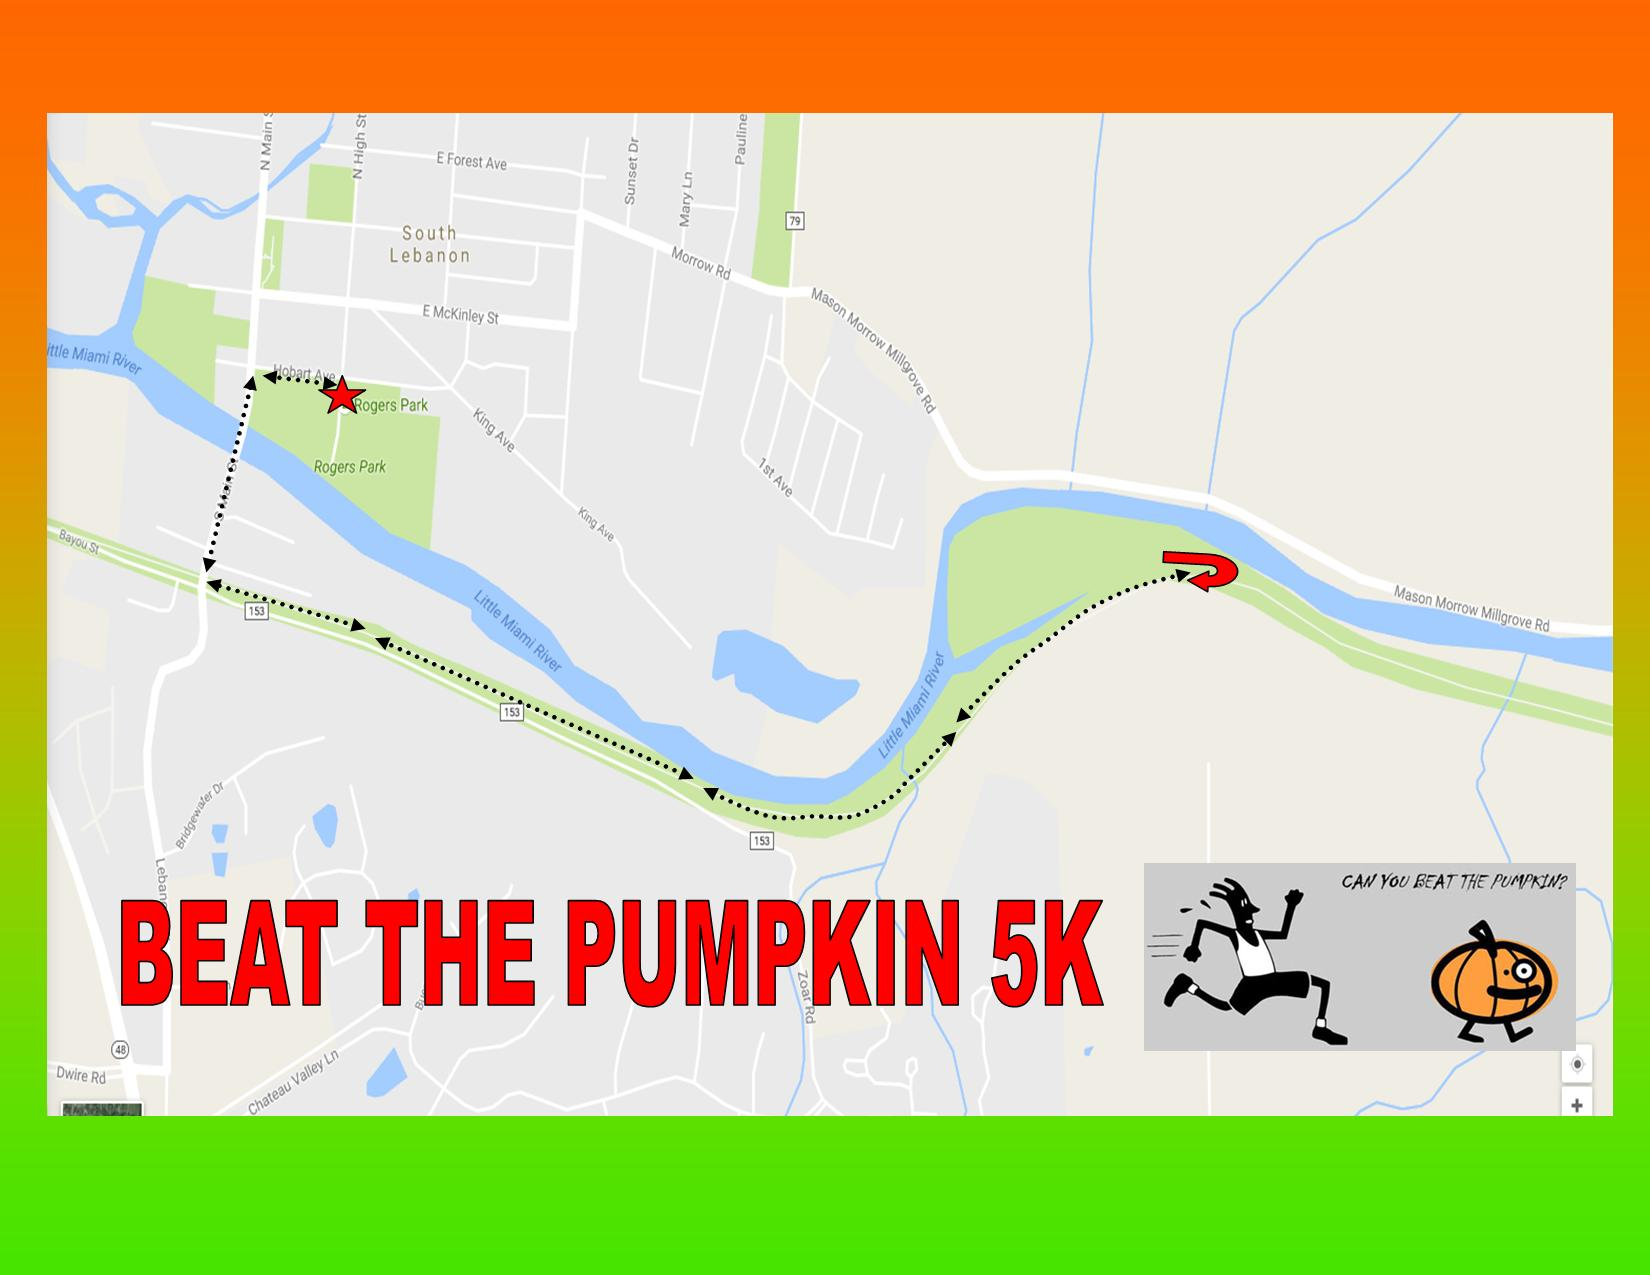 BEAT THE PUMPKIN 5K